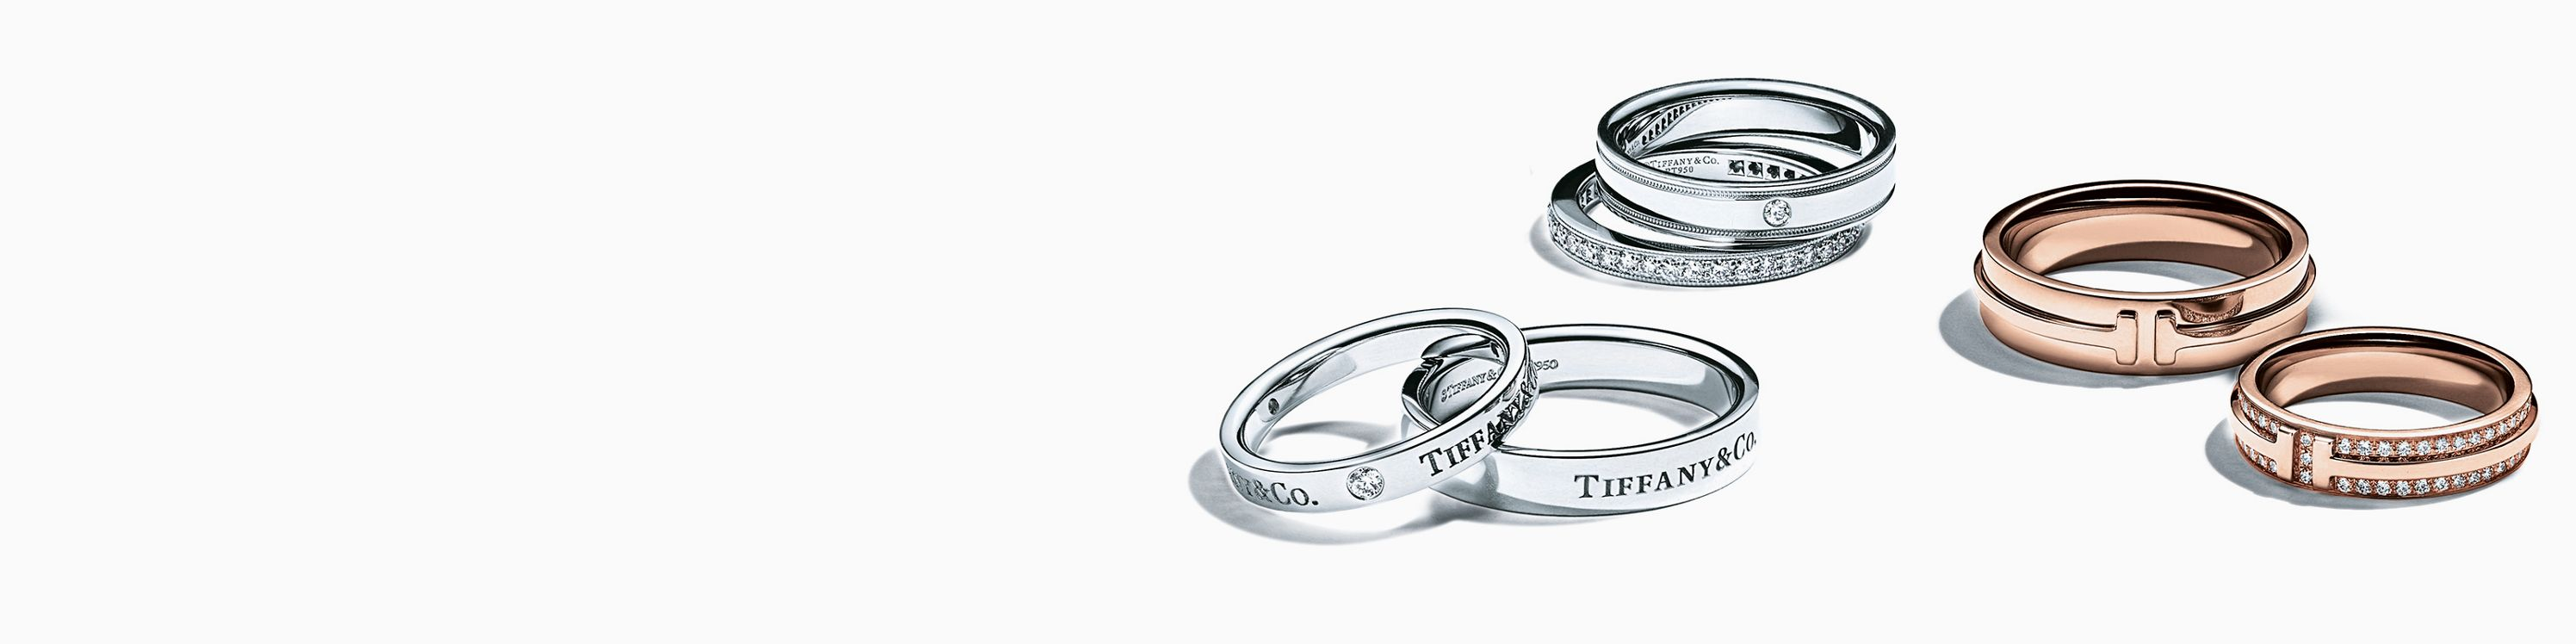 9860ff997 Wedding Band Sets | Made For Each Other | Tiffany & Co.